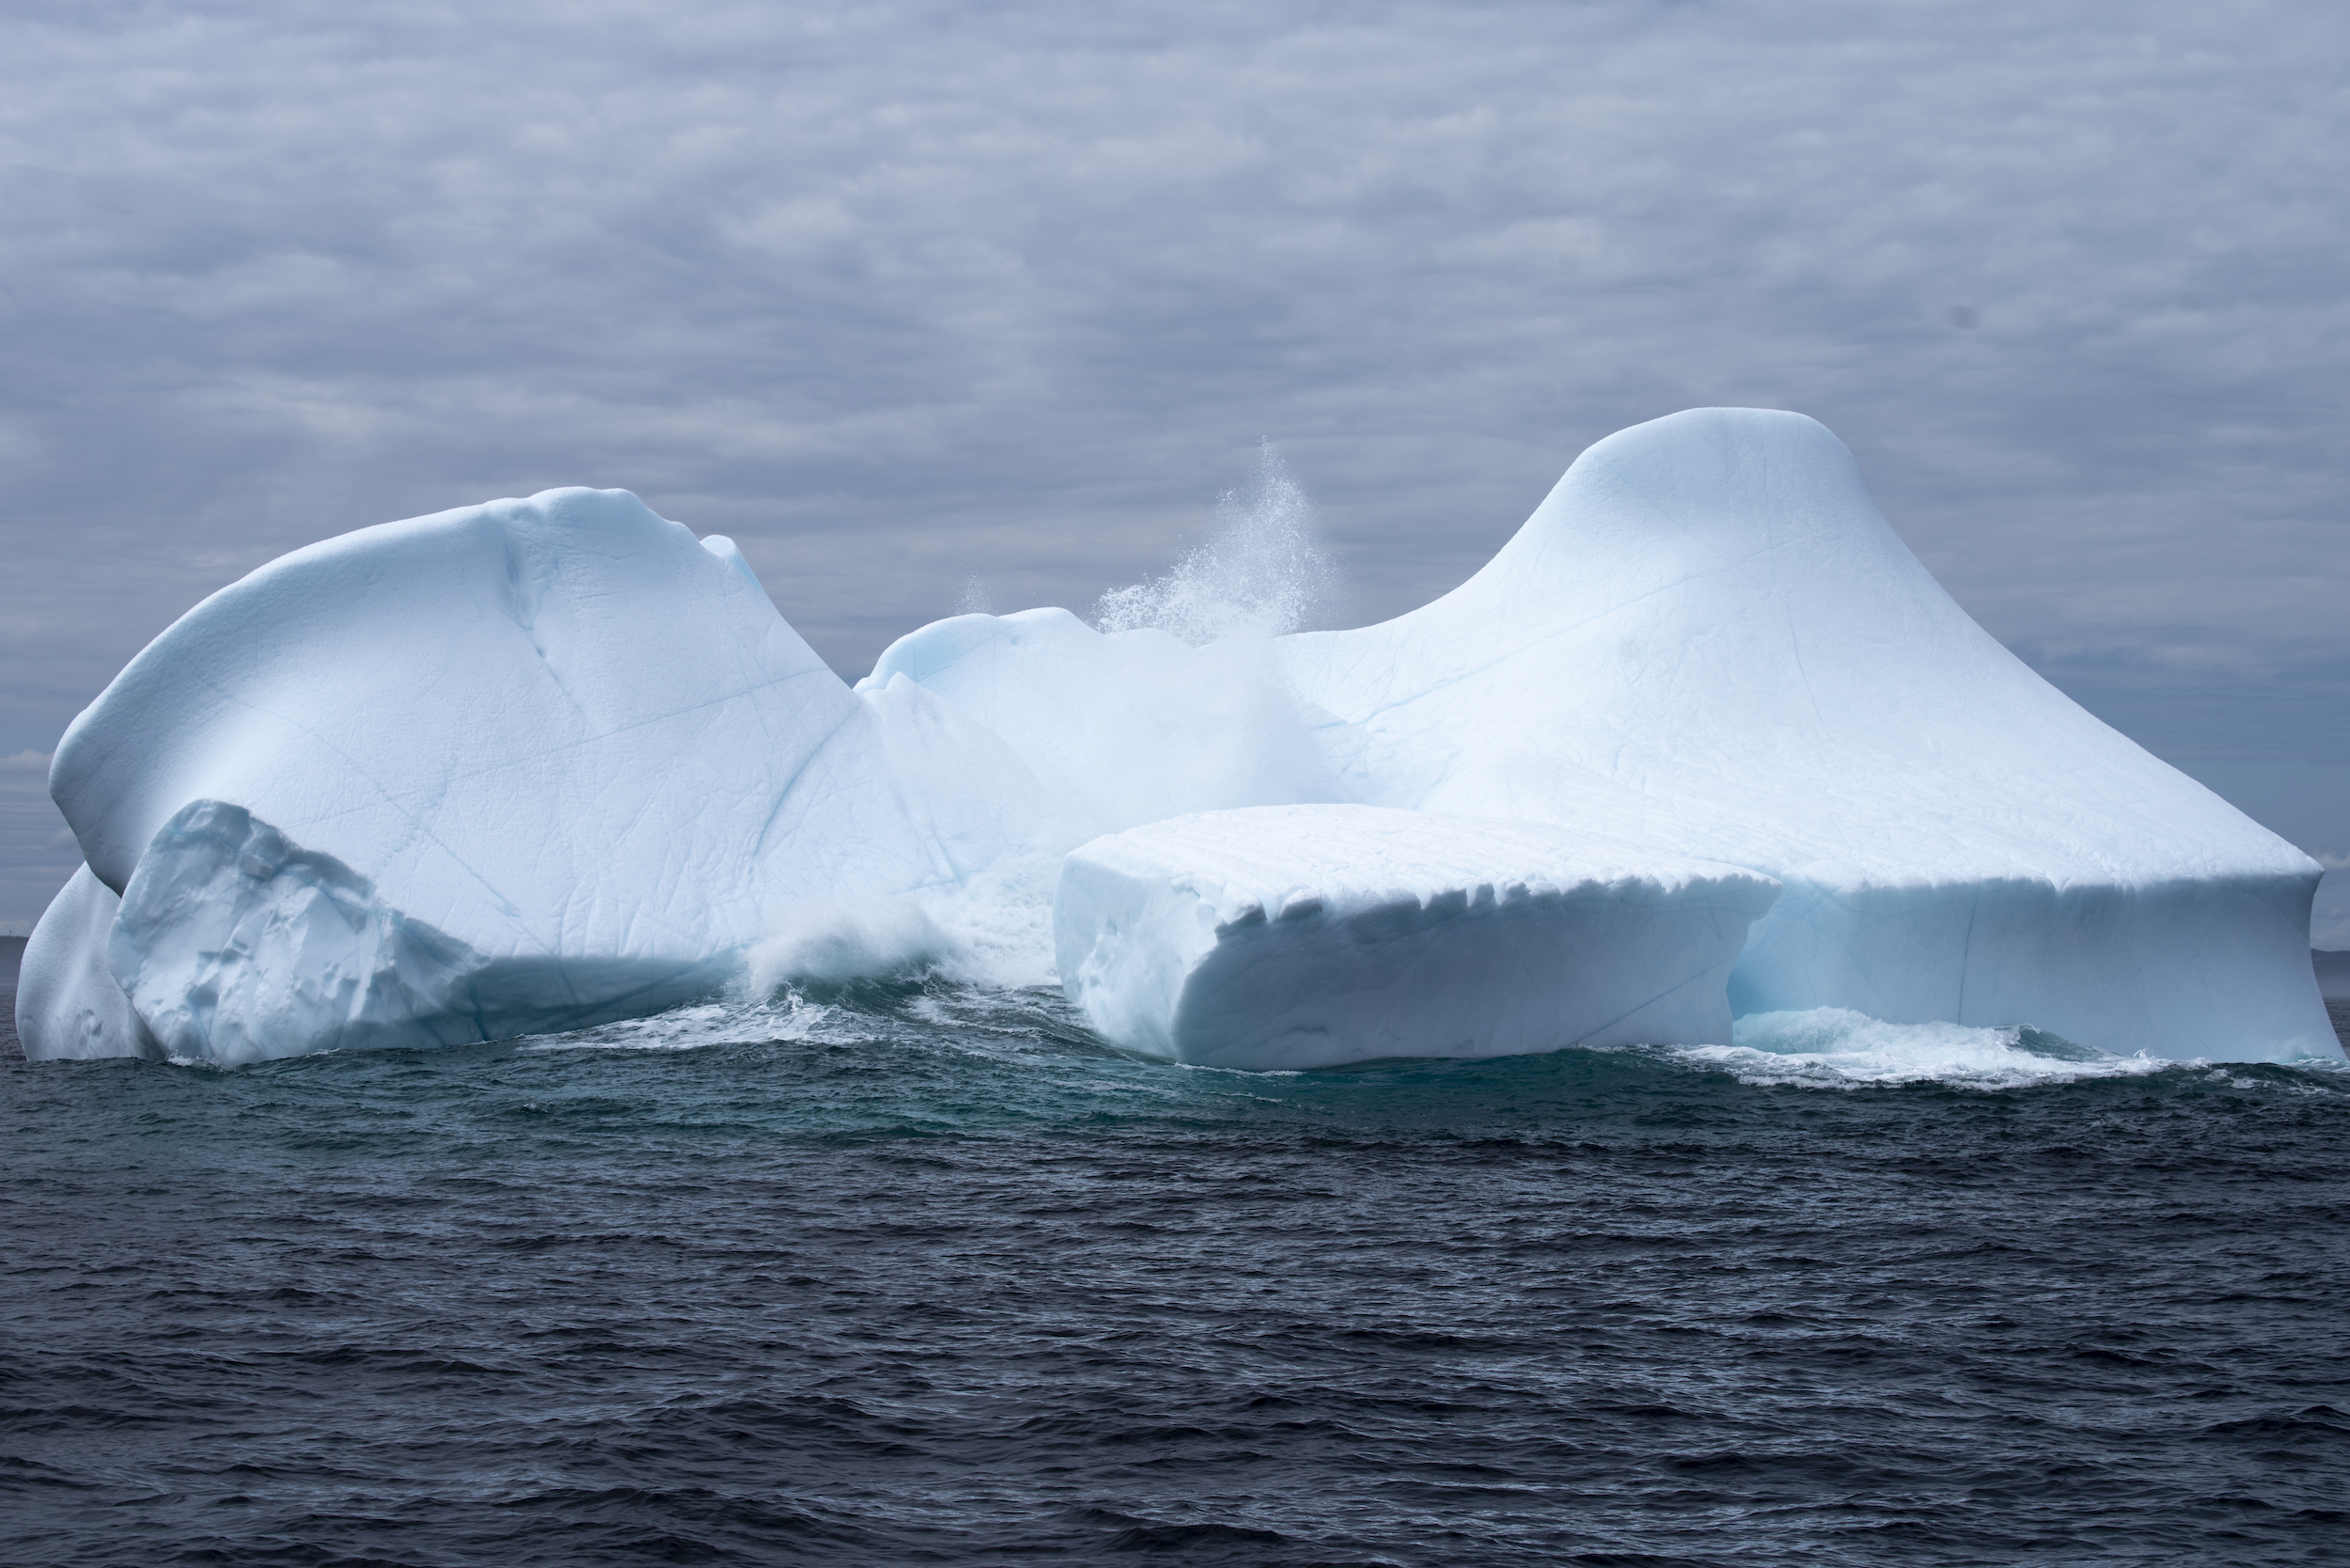 The way the ocean swell interacted with this berg was mesmerizing!